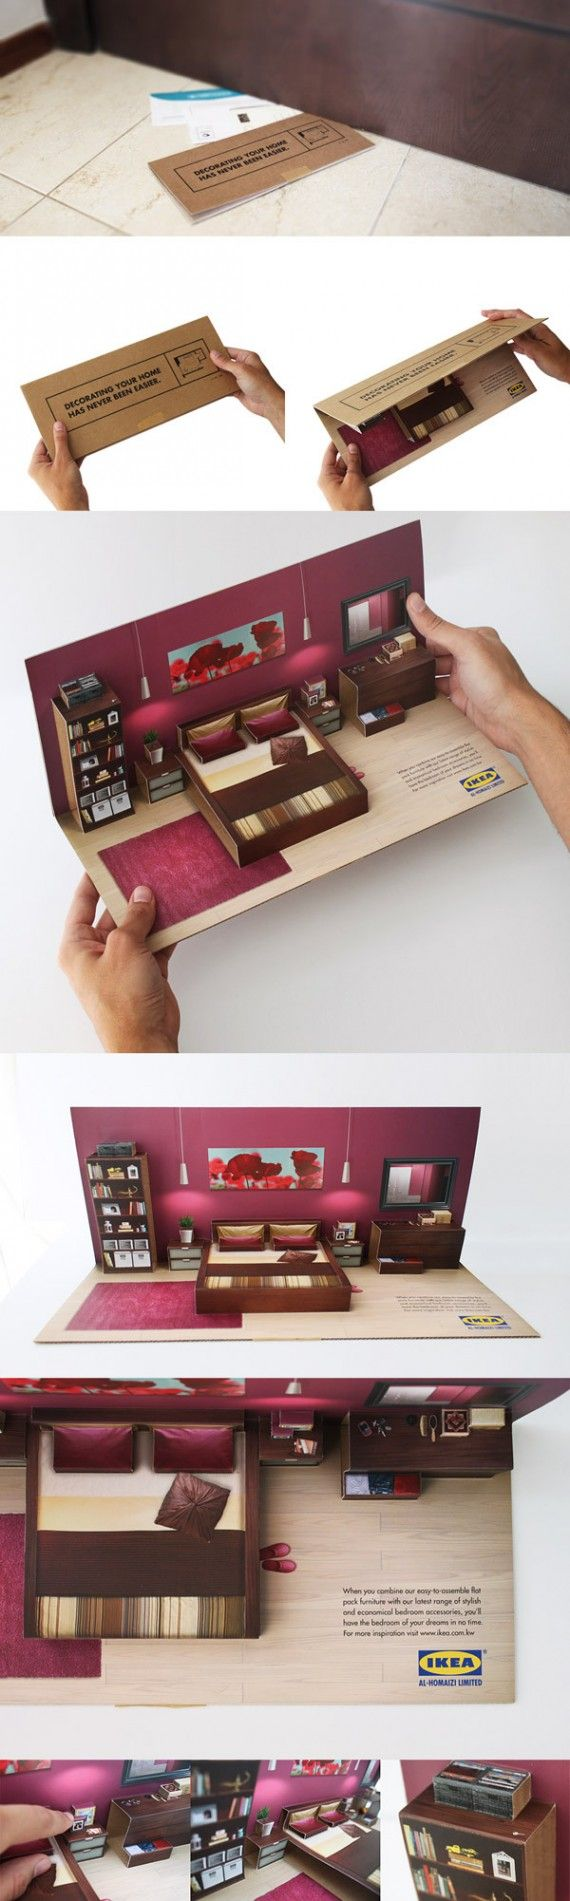 Pop-up card IKEA #creative